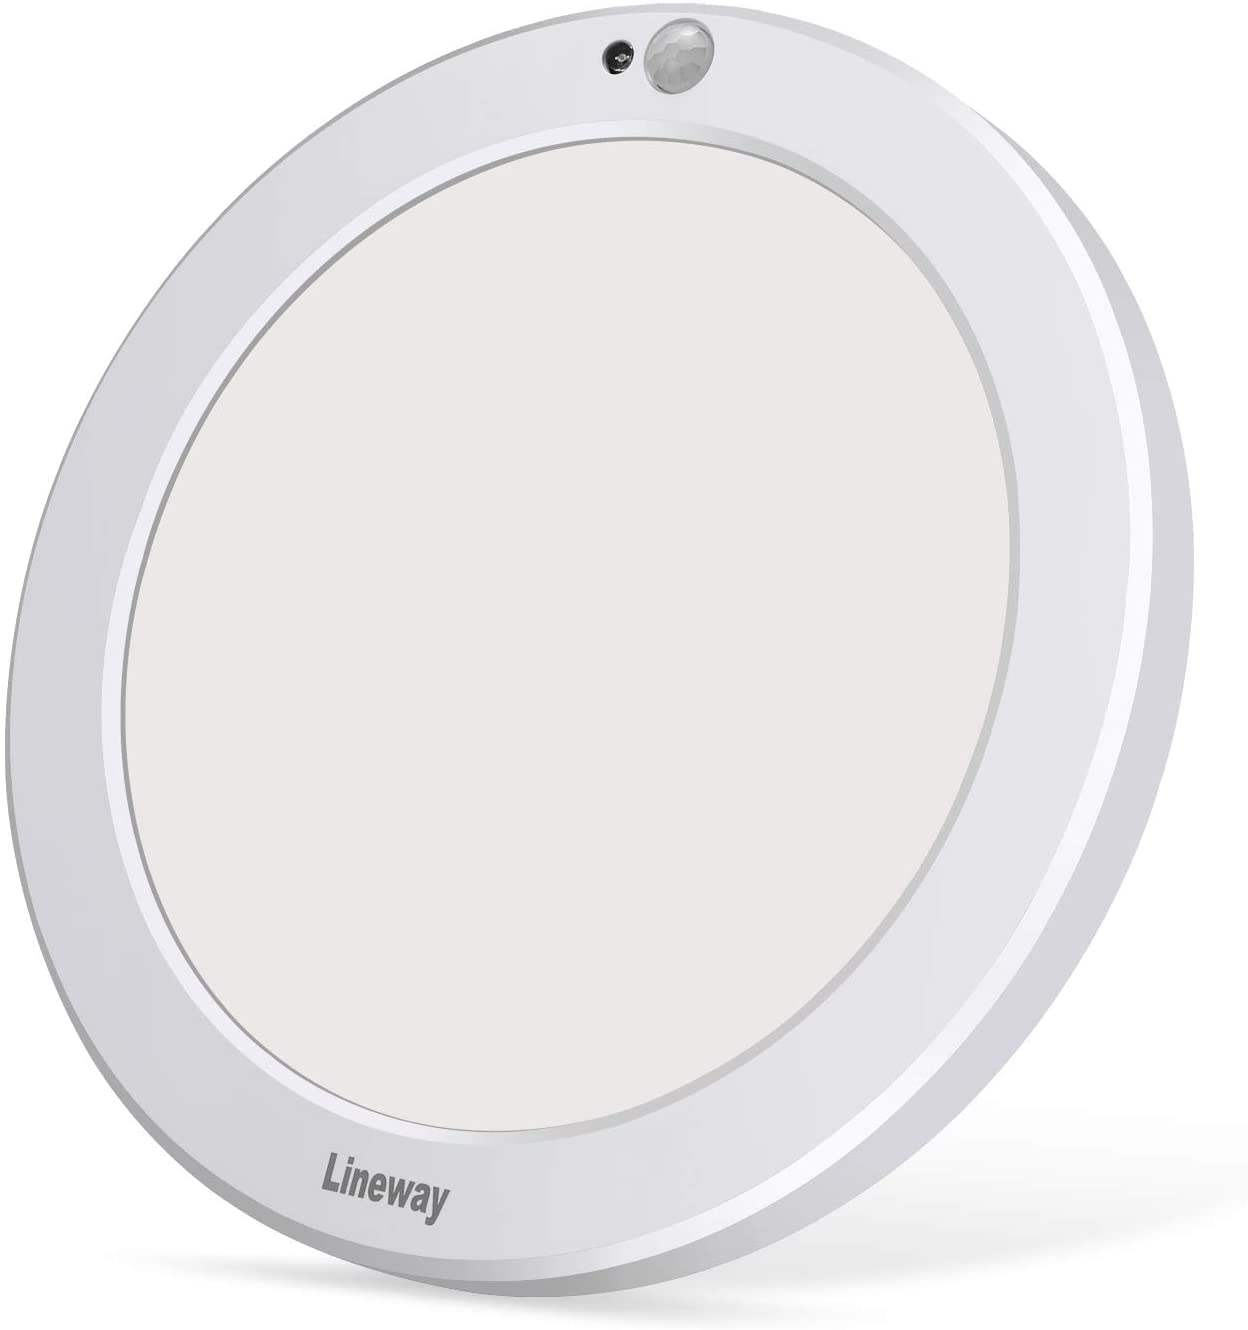 Lineway Motion Sensor Ceiling Light with 30s/180s Timeout Adjustable 3 Color Temperature, 3000K/4000K/6000K, 15W 1500lm LED Round Lighting Fixture for Closet Pantry Porch Stair Laundry